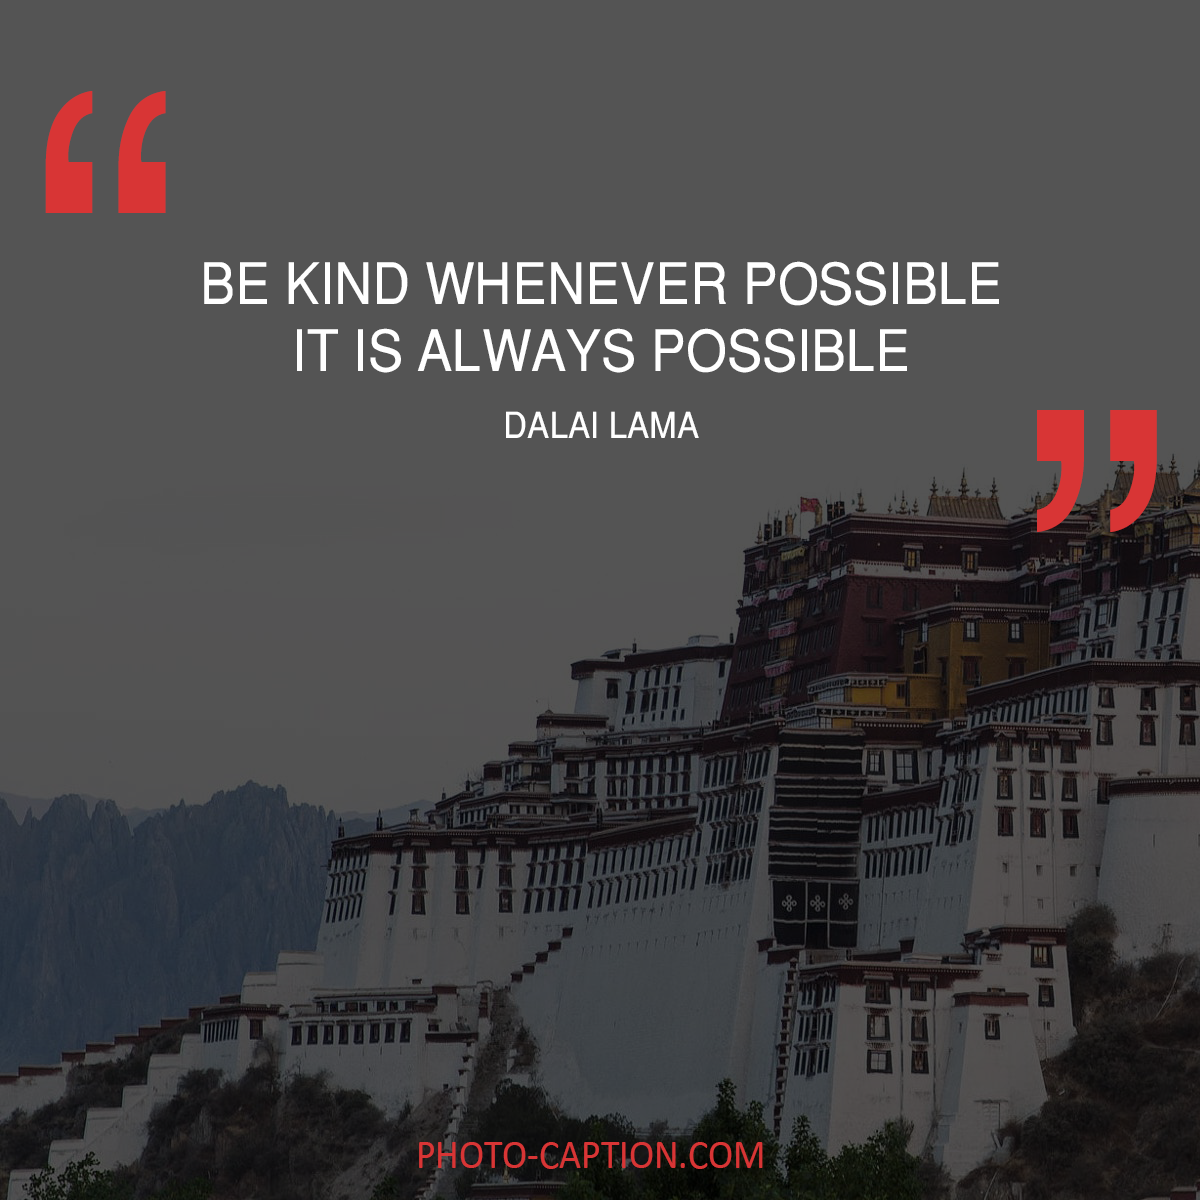 Motivational Captions Be Kind Whenever Possible It Is Always Possible.'' Dalai Lama